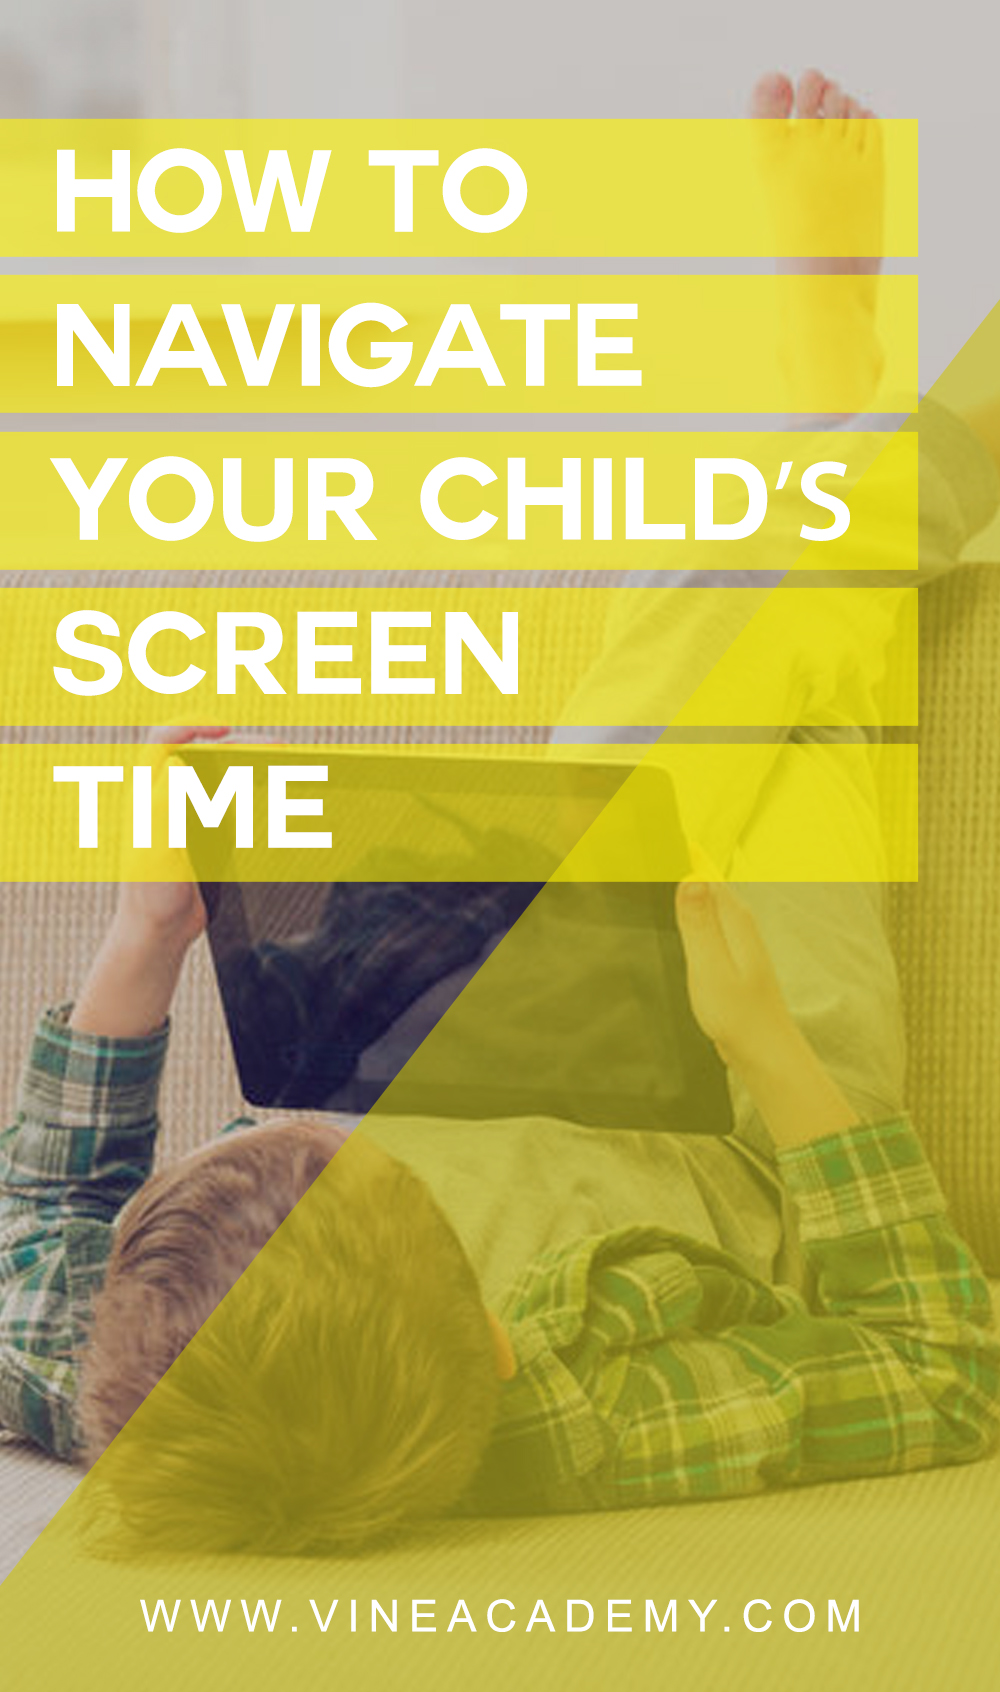 navigate screen time.jpg